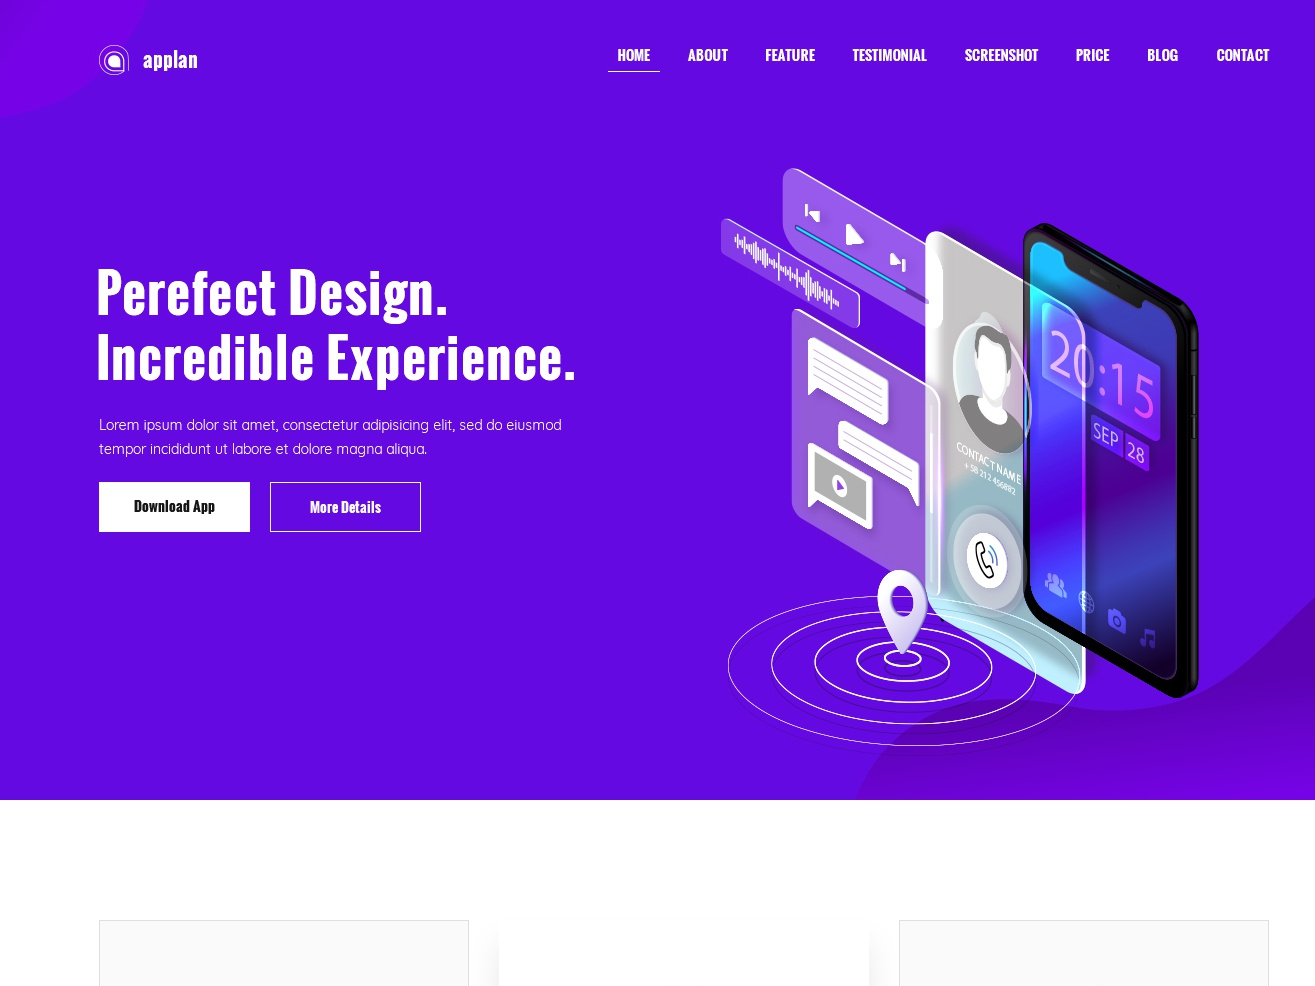 Appiya – PSD landing page template apps design apps ladningpage clean bootstrap design creative minimal free blog freebie